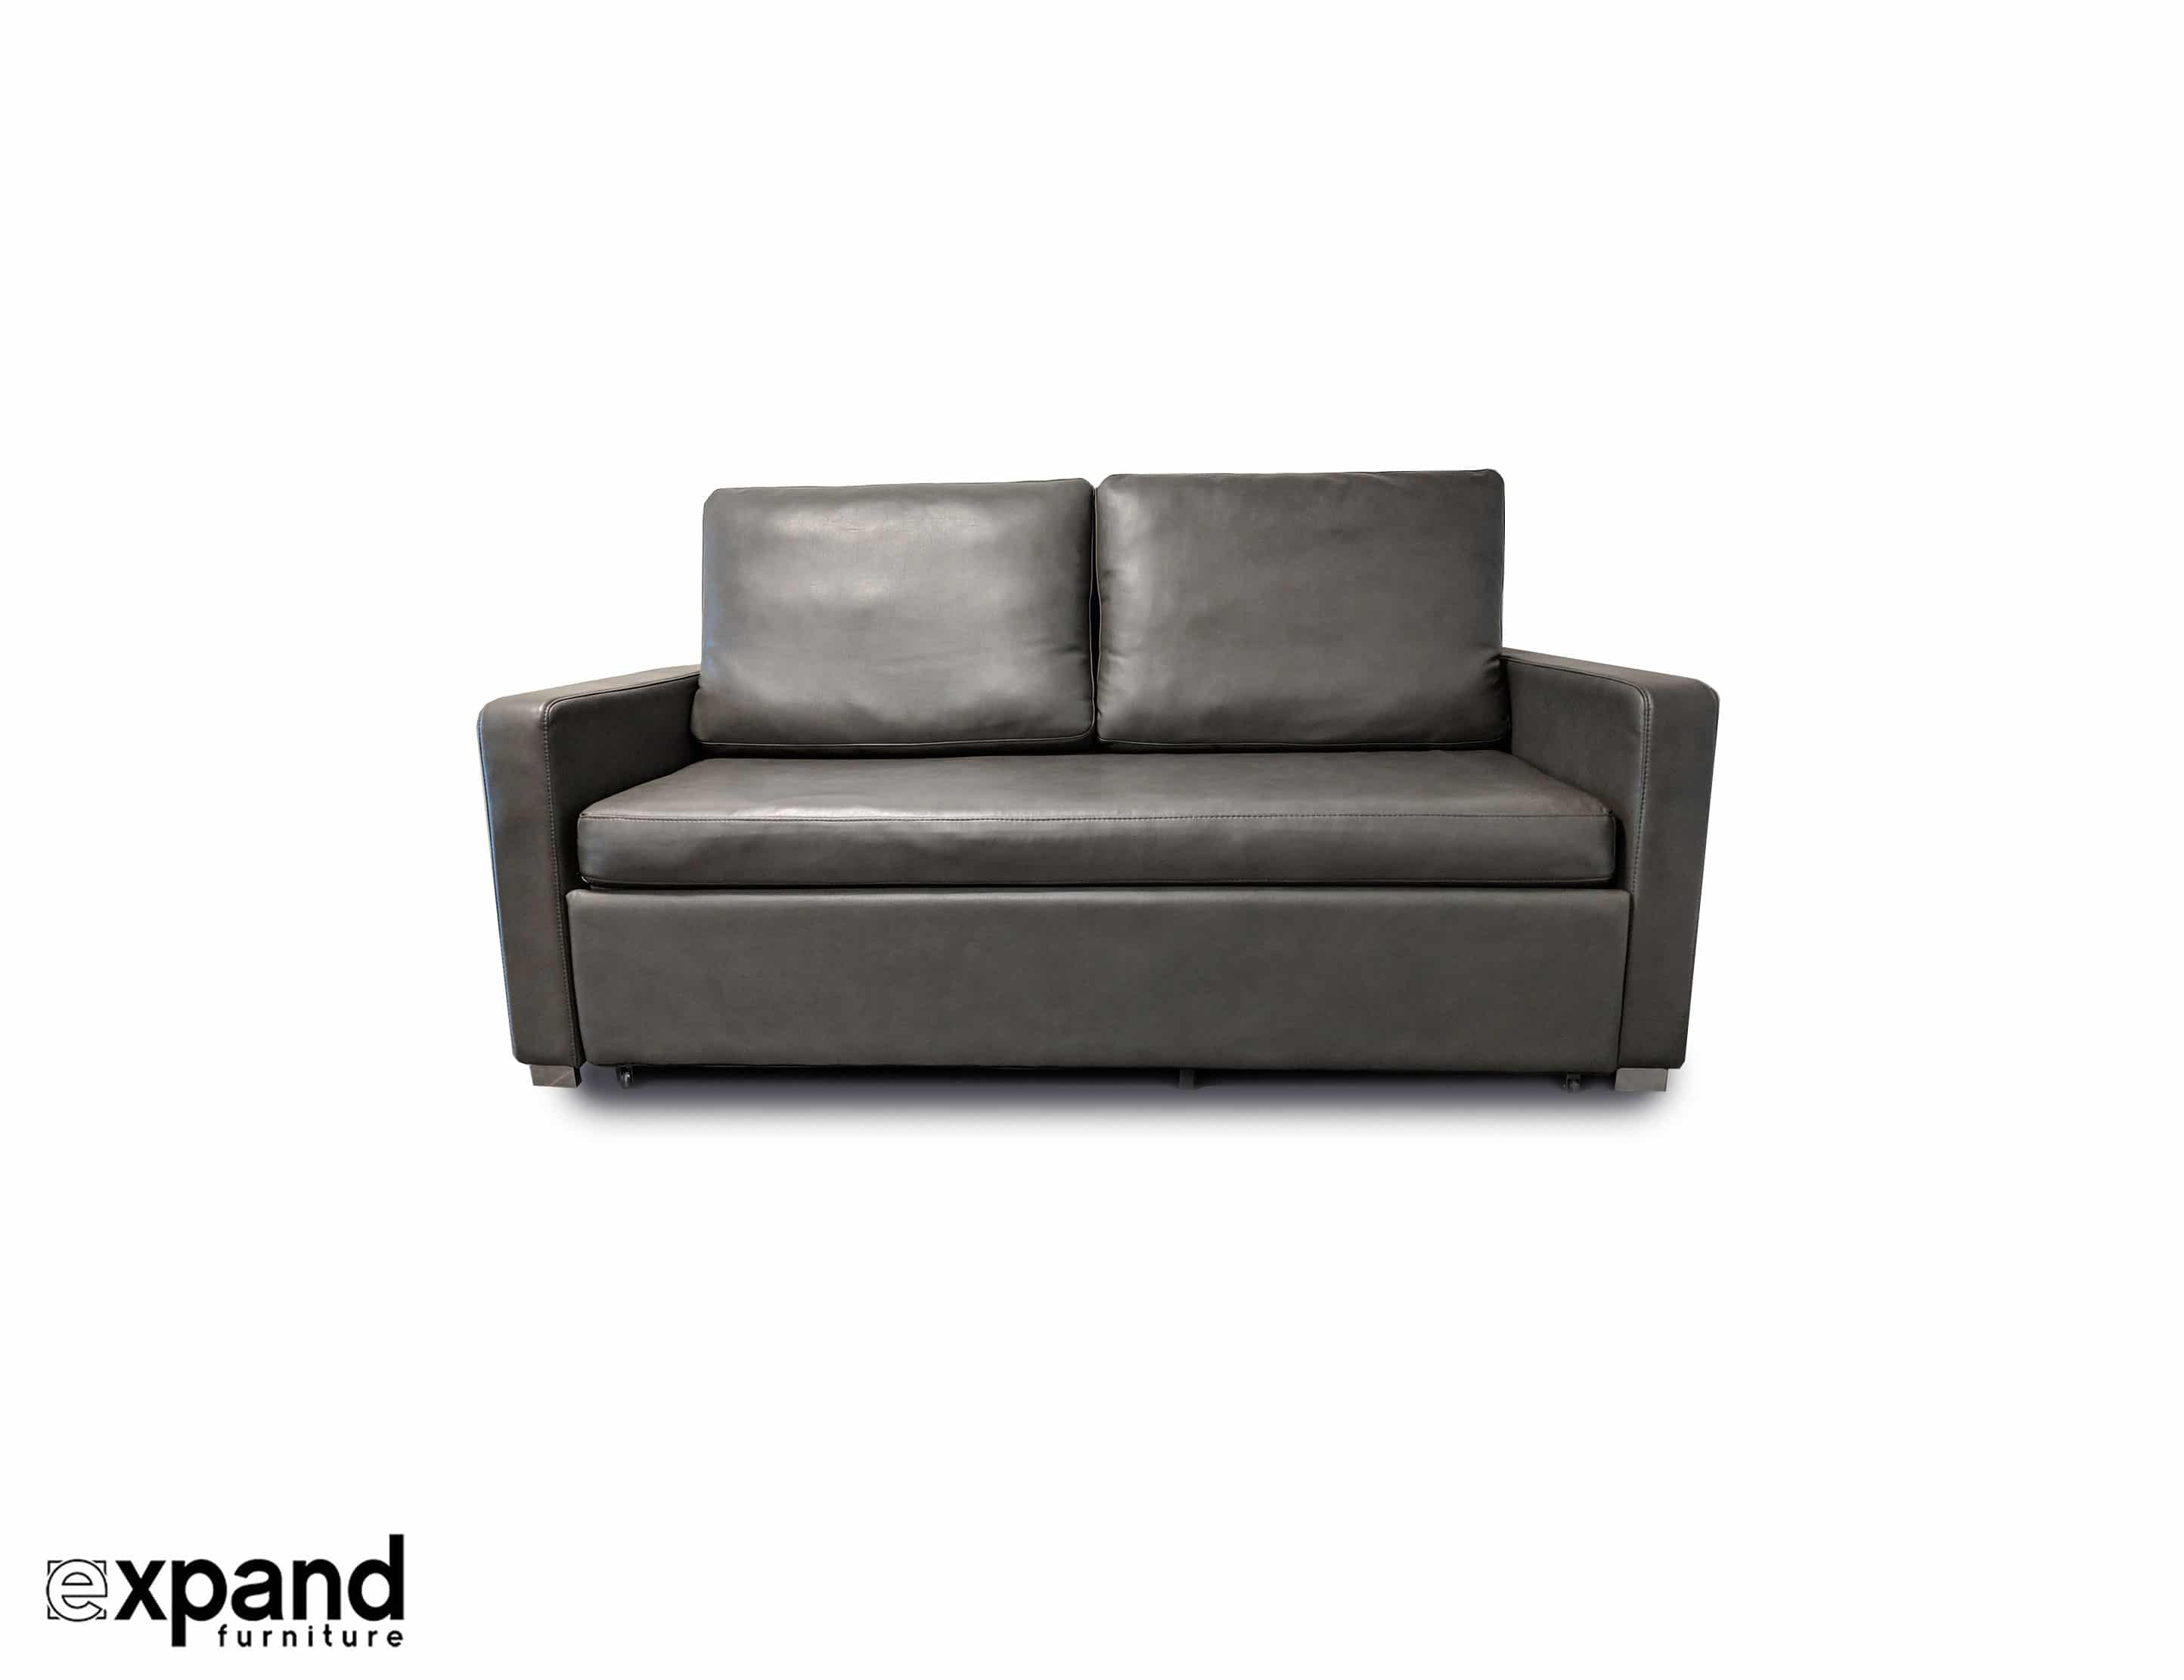 Harmony Sofa Bed Queen - Eco Leather | Expand Furniture - Folding ...